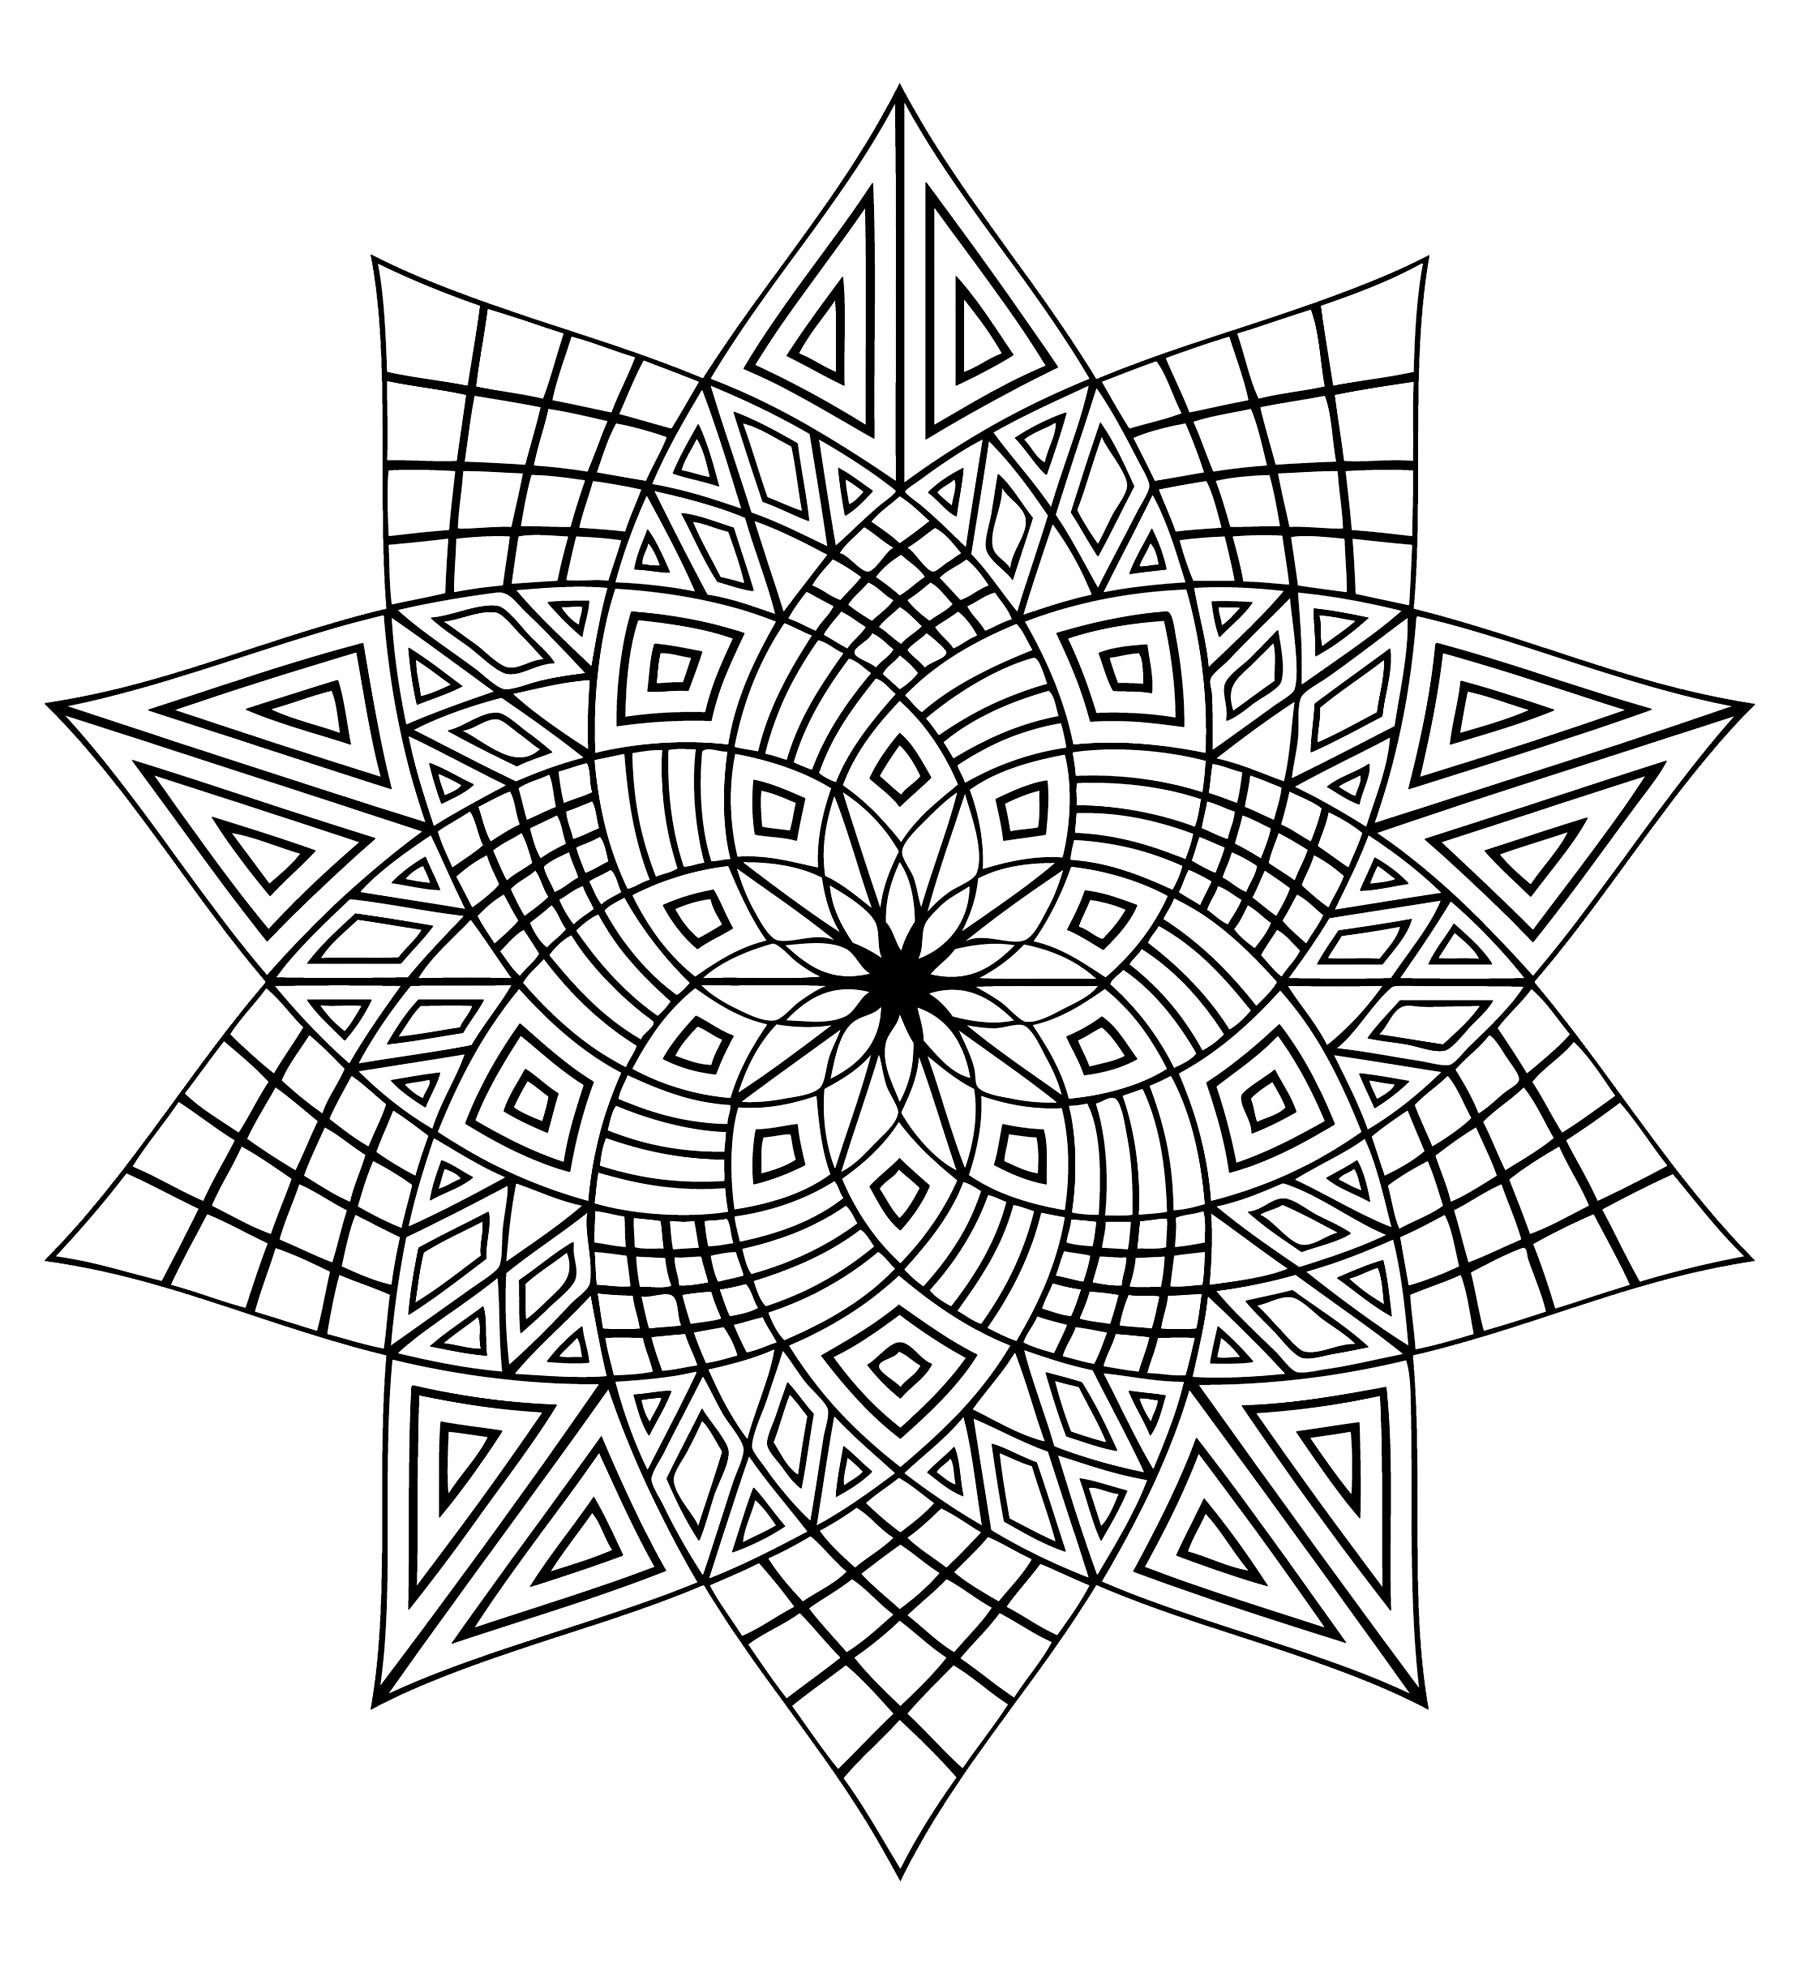 Here Are Difficult Mandalas Coloring Pages For Adults To Print For Free Mandala Is Geometric Coloring Pages Abstract Coloring Pages Pattern Coloring Pages